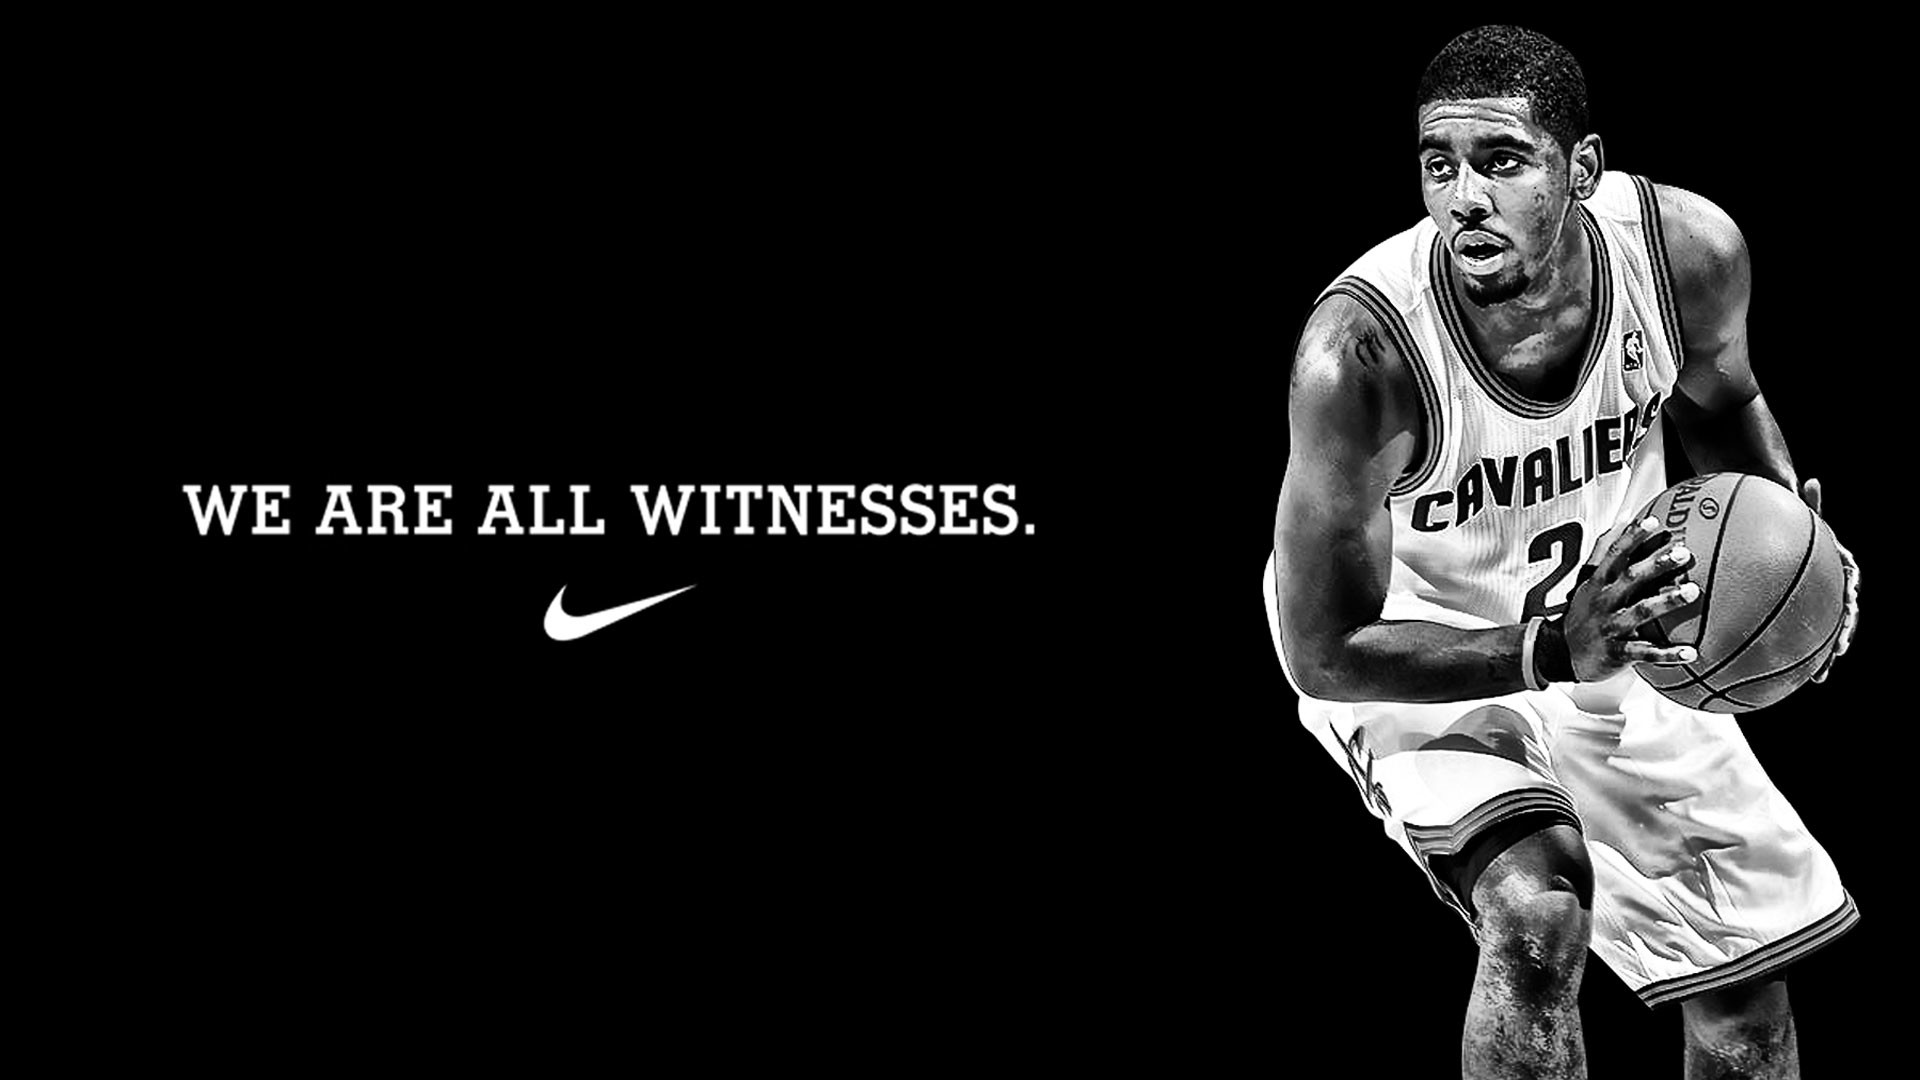 1920x1080 Kyrie Irving We Are All Witnesses Wallpaper